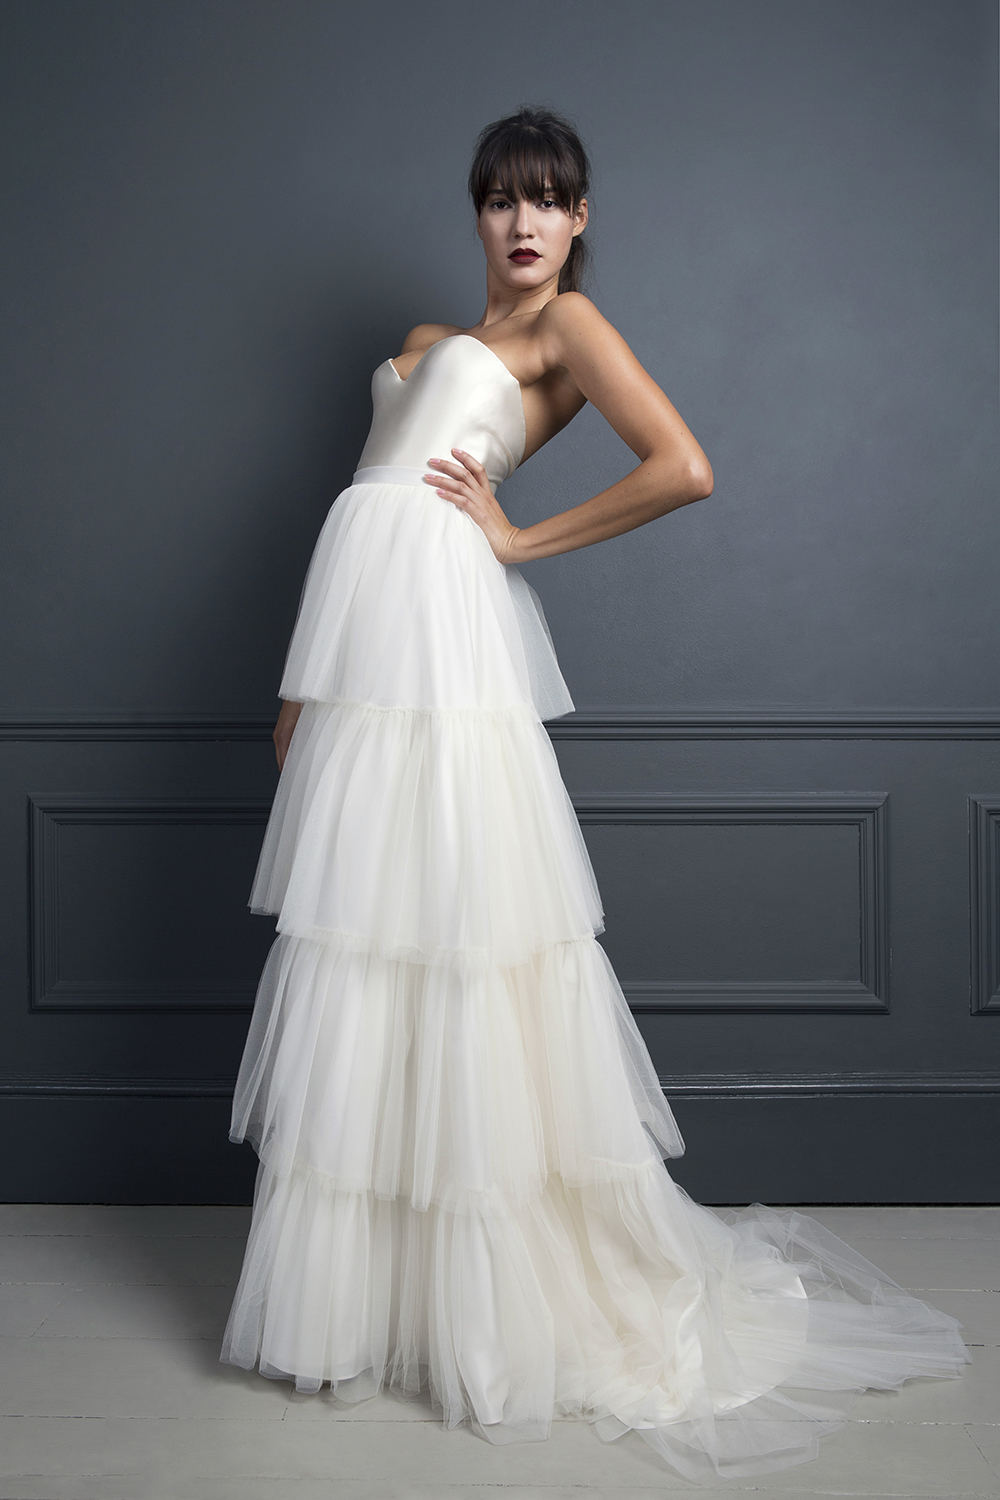 RITA SKIRT & LORETTA SATIN CORSET | WEDDING DRESS BY HALFPENNY LONDON